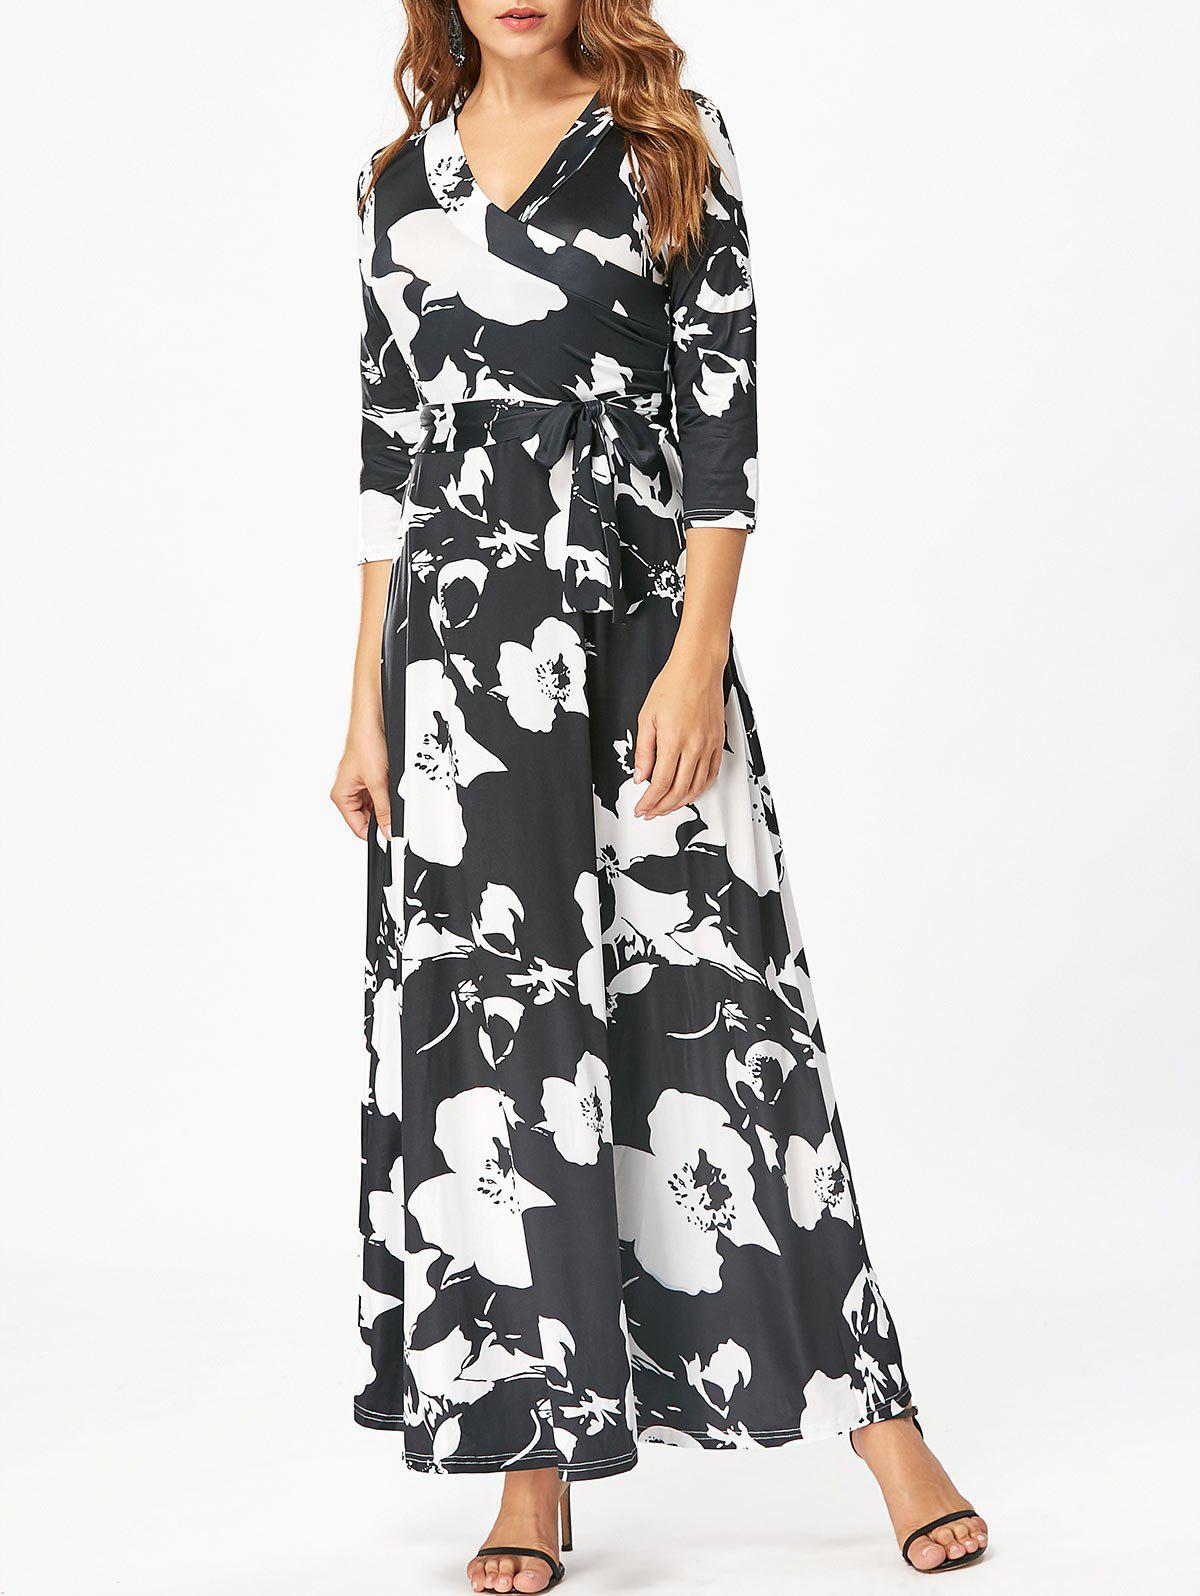 Surplice Floral Print Belted Maxi Dress - BLACK 2XL